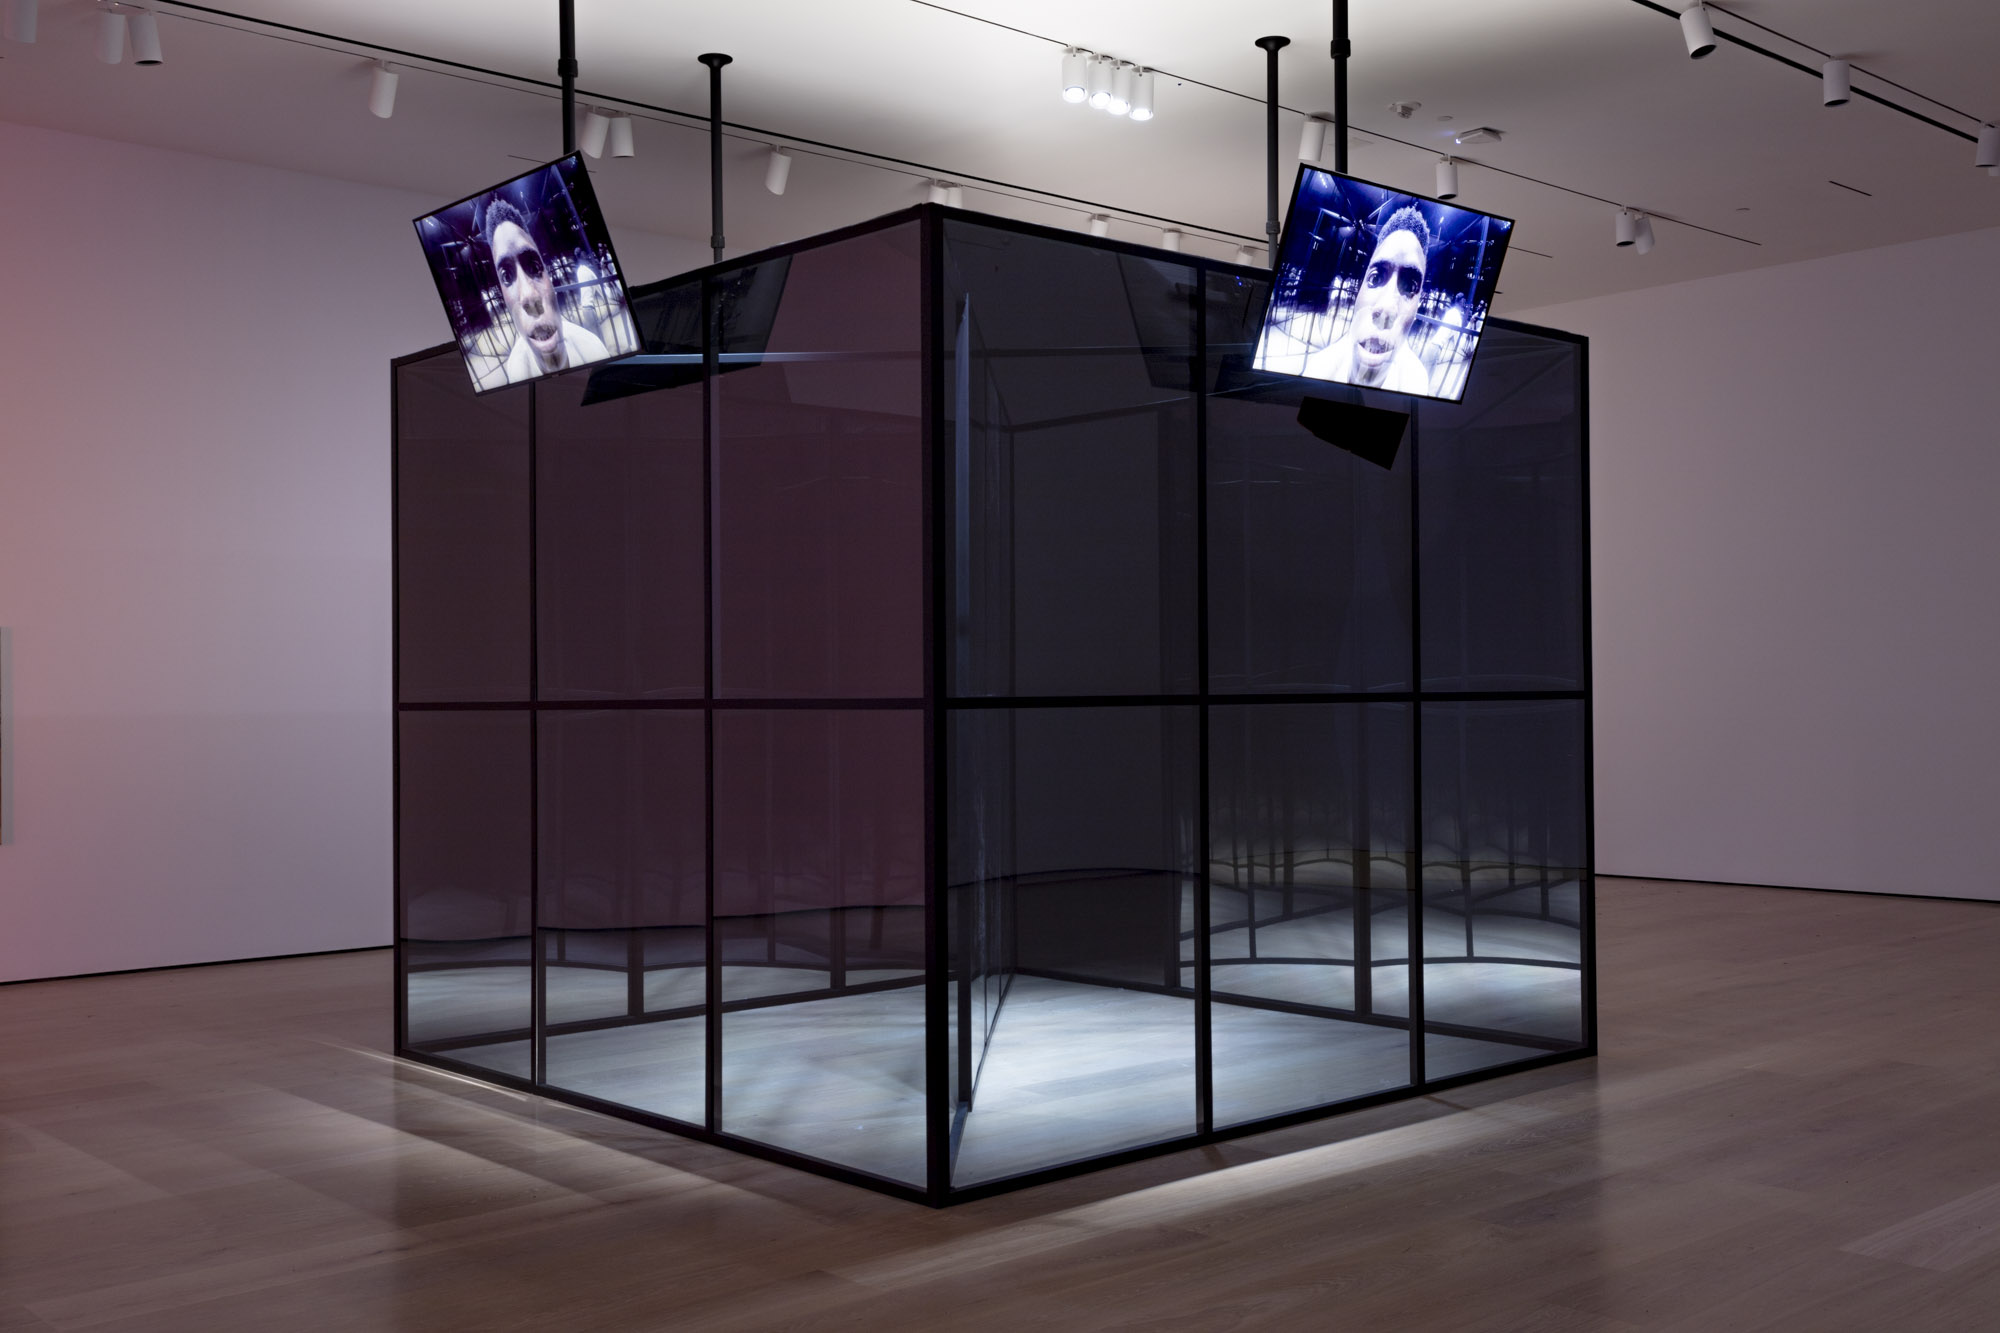 """An installation view of Aria Dean's work at """"Made in L.A. 2020: a version."""" at Hammer Museum, Los Angeles. 